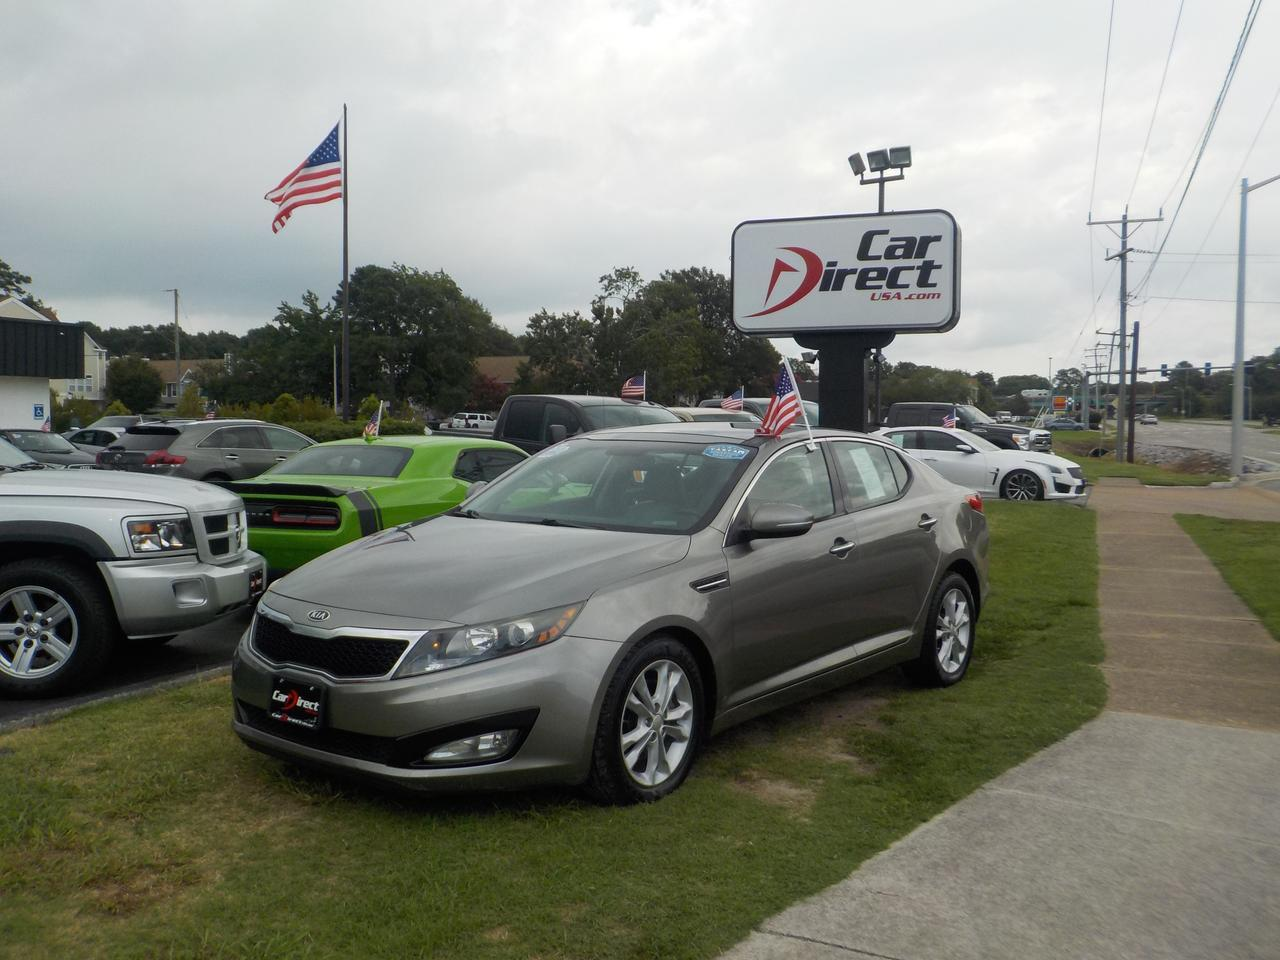 2012 KIA OPTIMA EX, HEATED & COOLED SEATING, BLUETOOTH WIRELESS, BACKUP CAMERA, PARKING SENSORS, PANORAMIC ROOF!